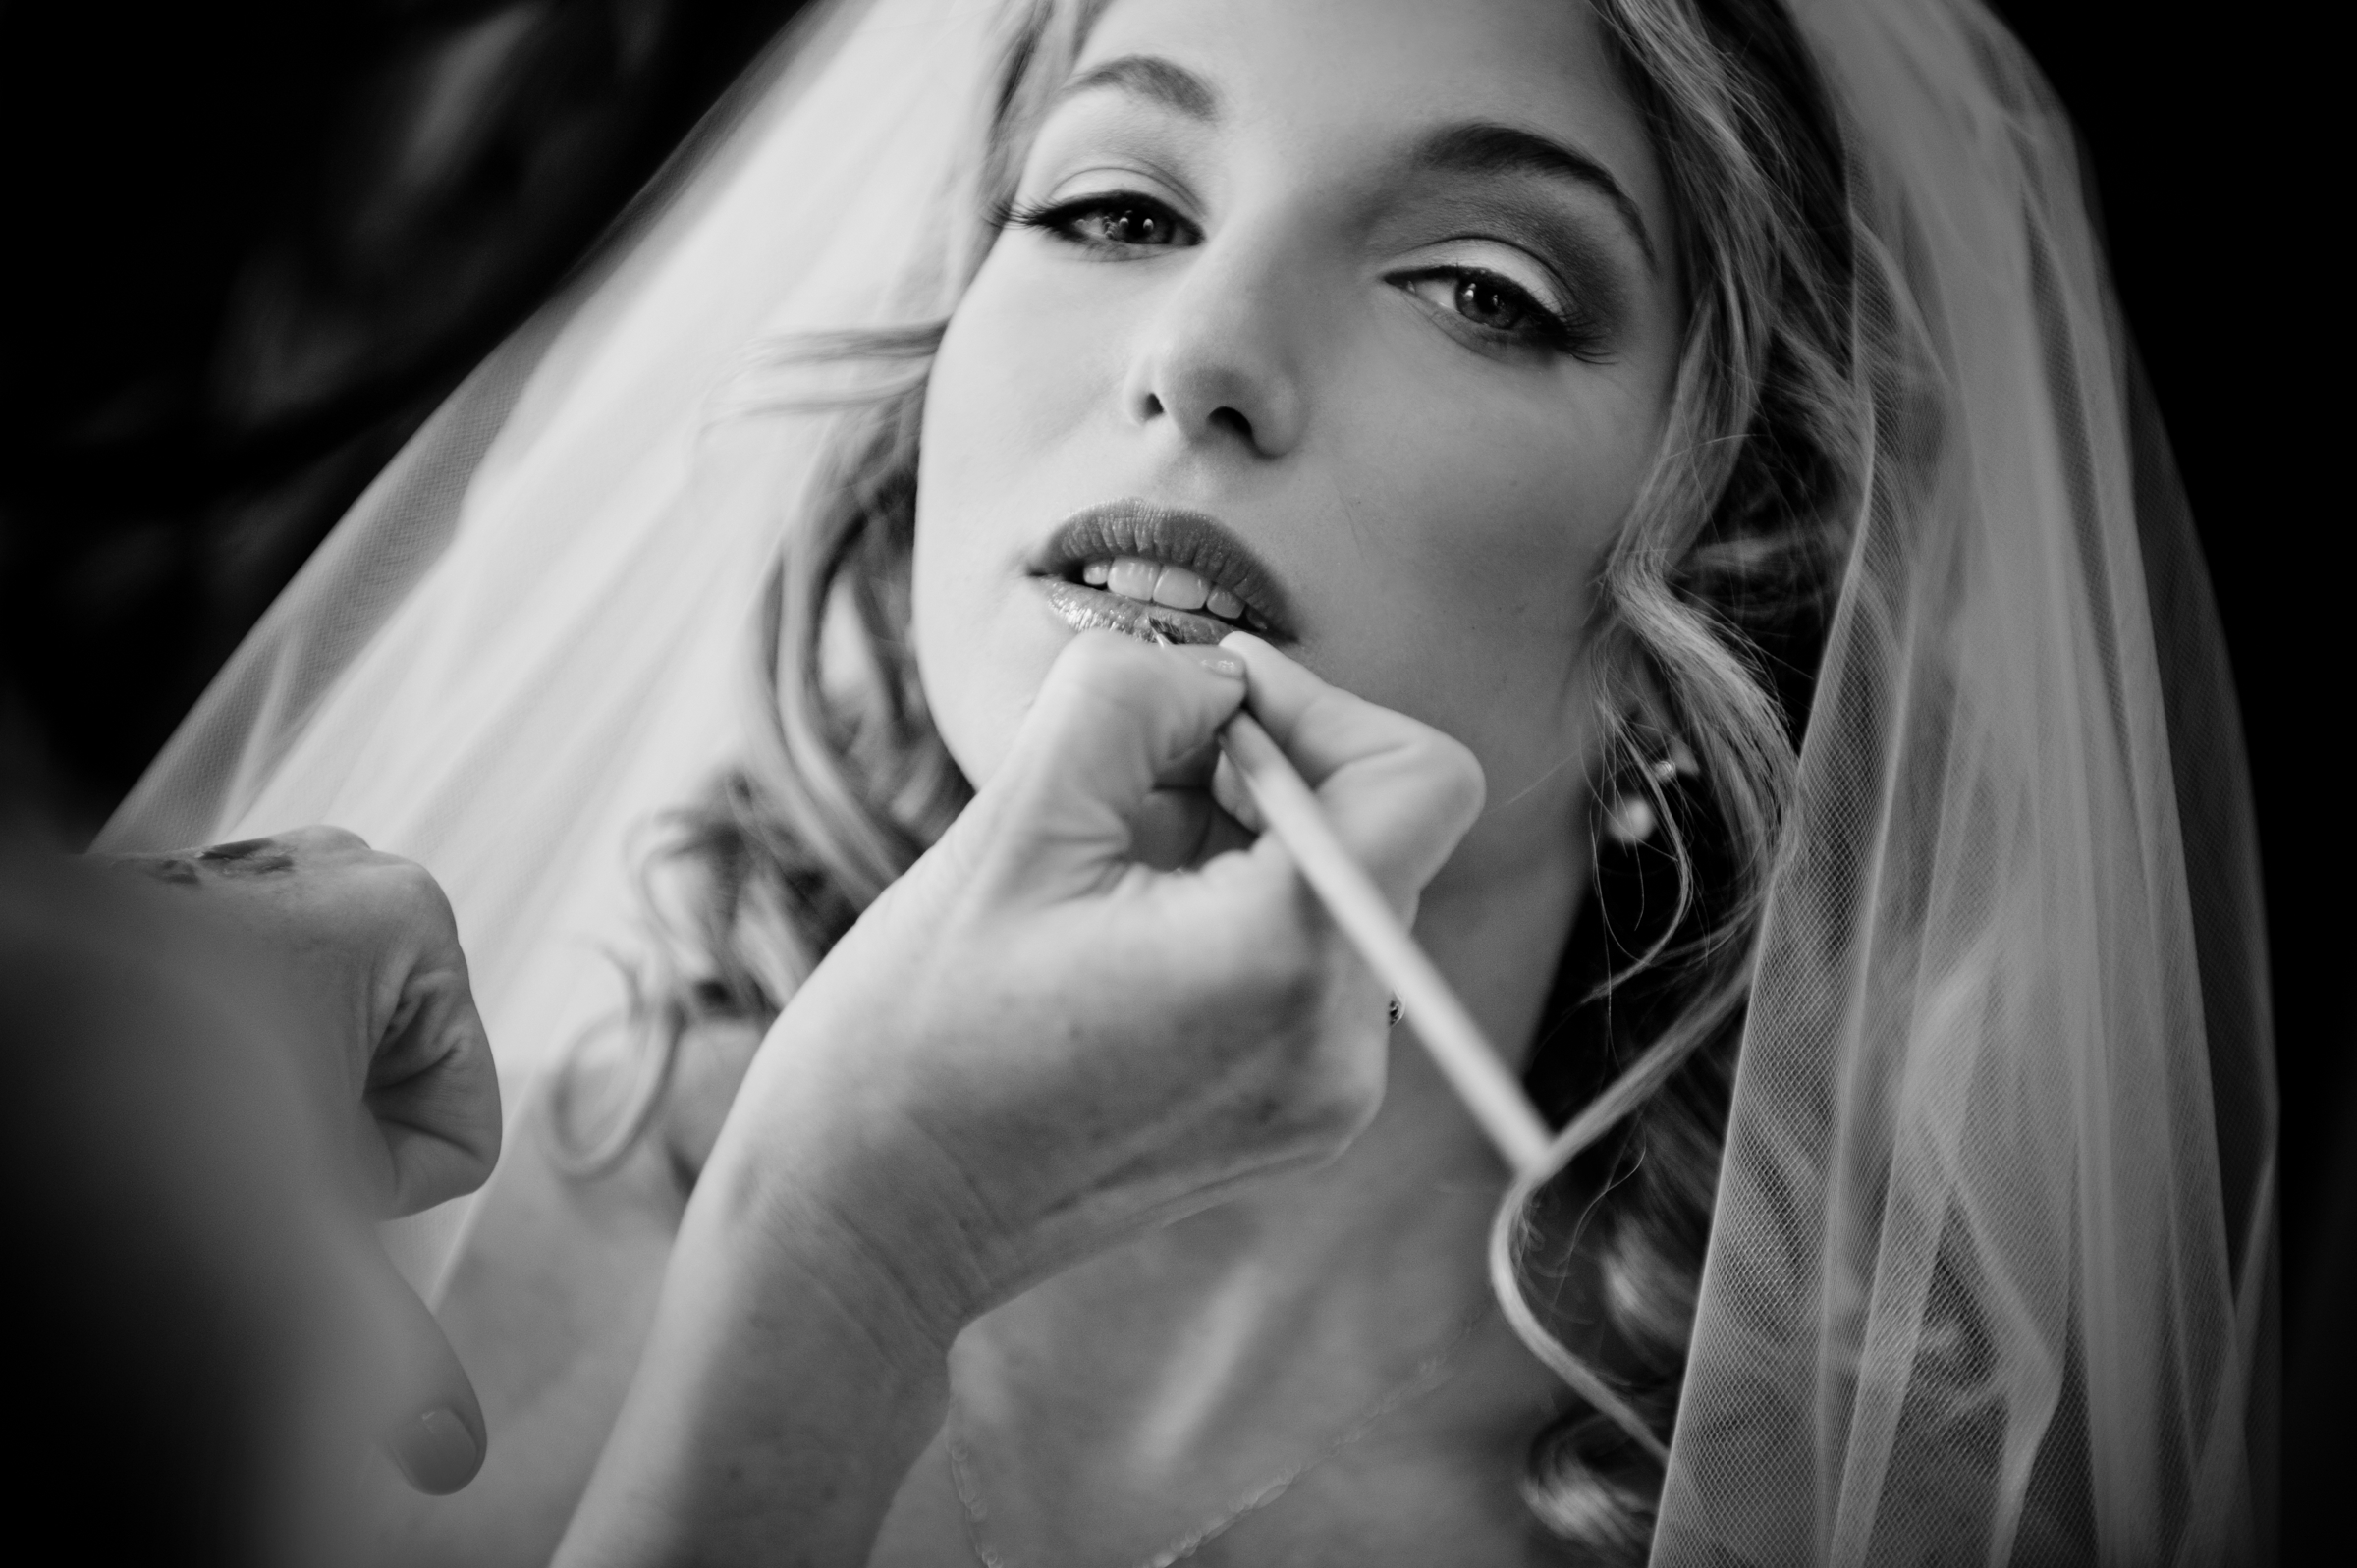 Bride having makeup applied - photo by Morgan Lynn Photography